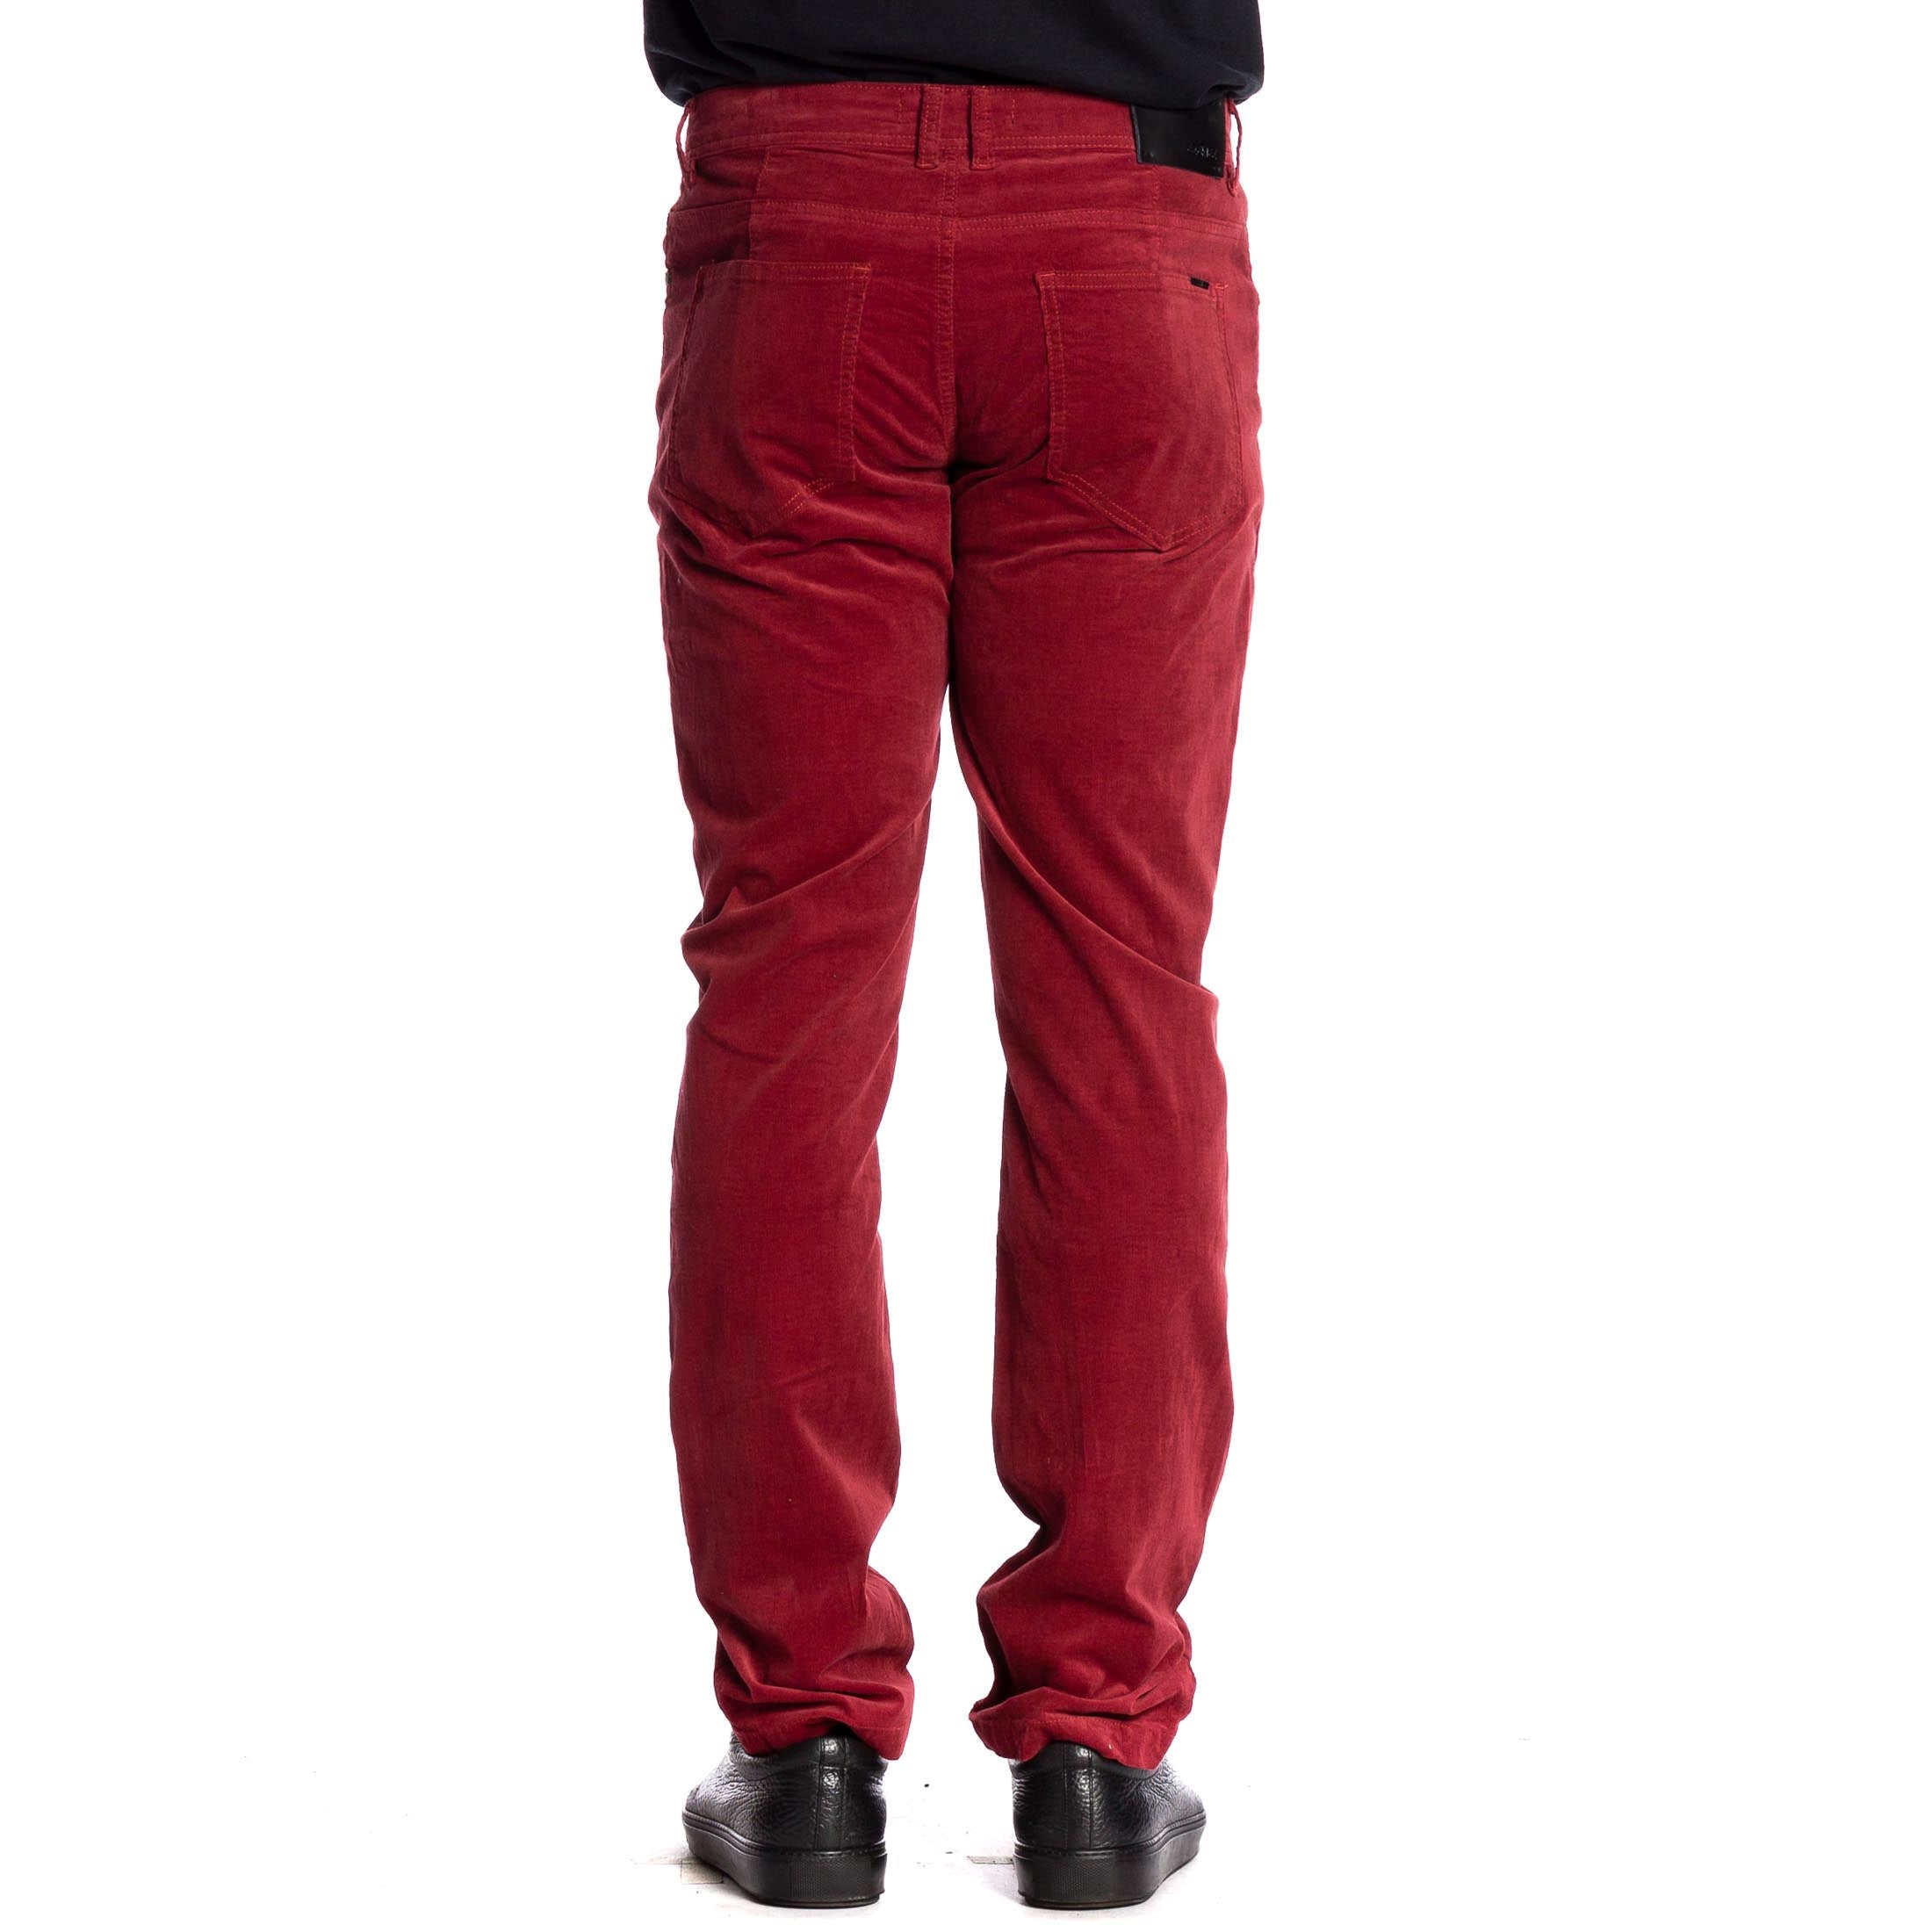 Bryce Pant - Dark Red - Ezekiel Clothing